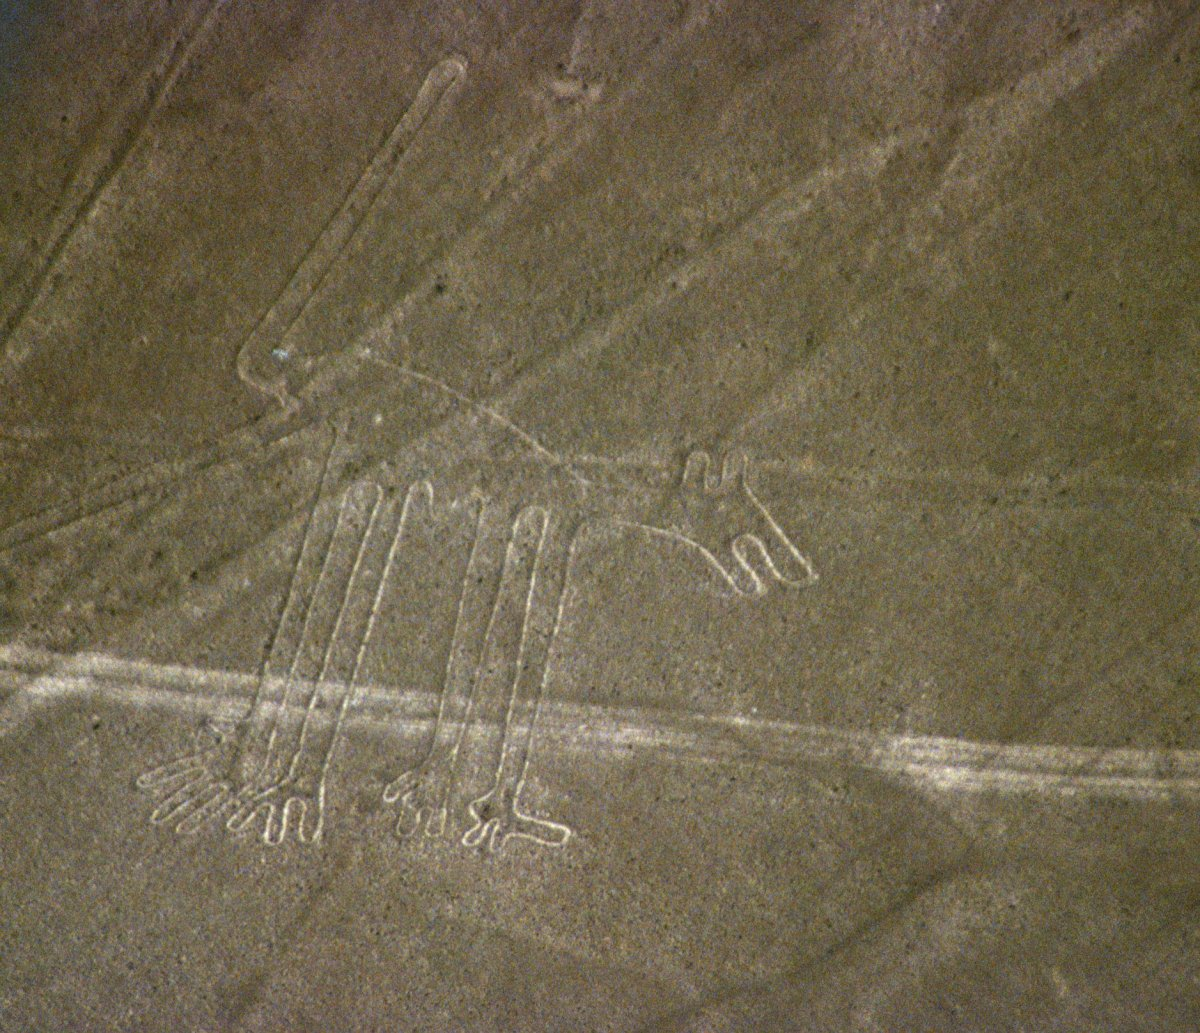 Learn About the Nazca Lines for Kids